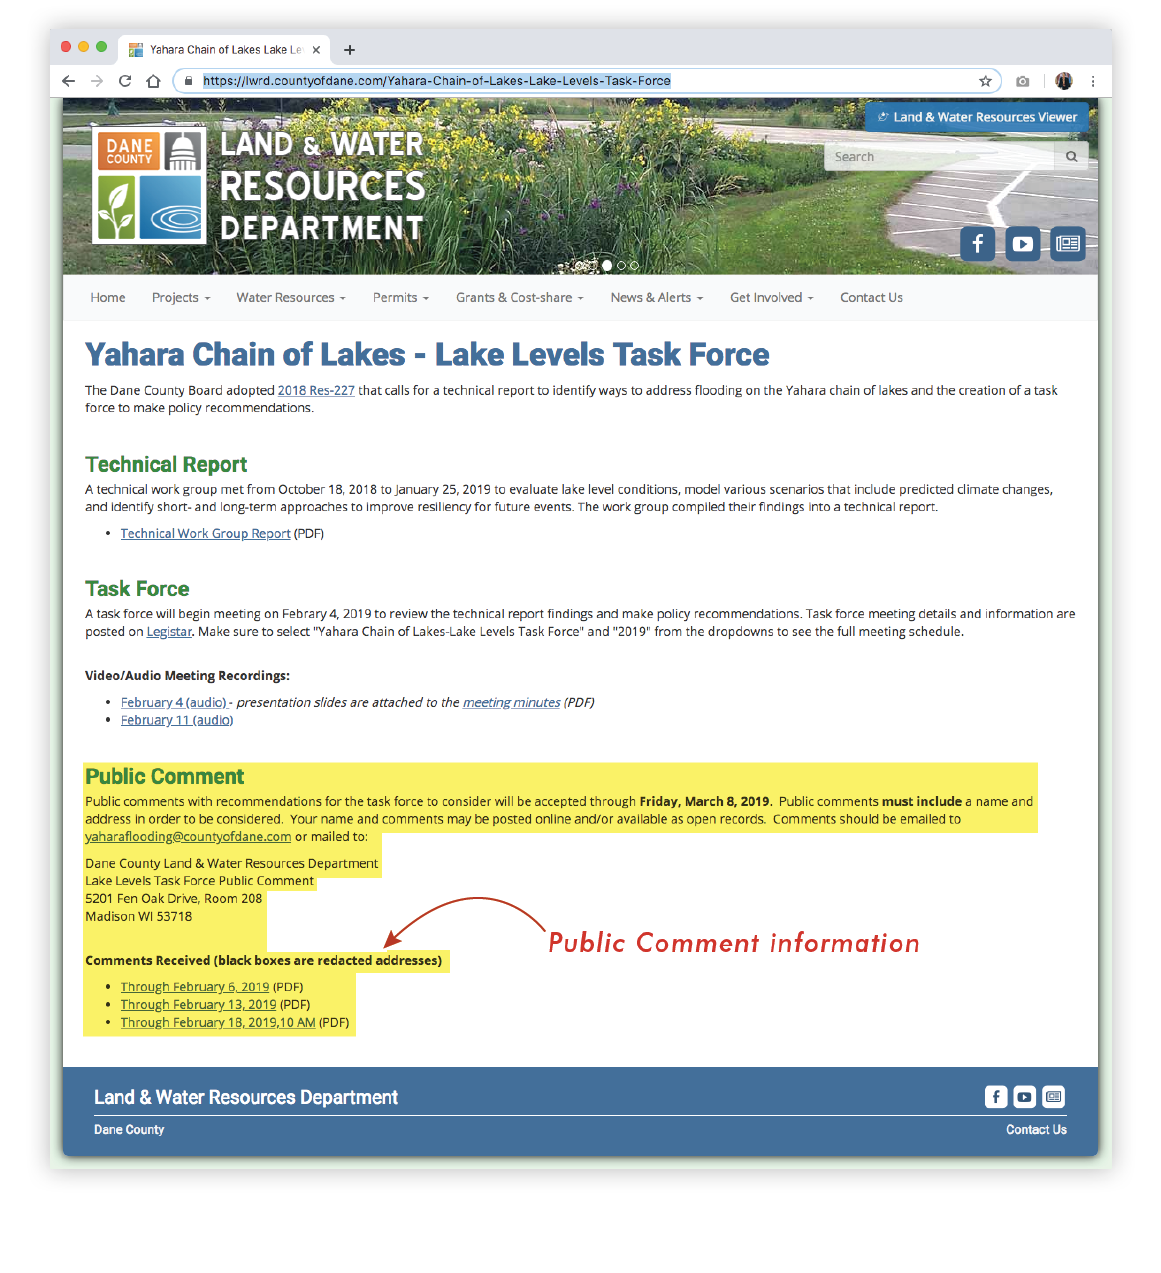 LAnd & Water REsources department, Yahara Chain of Lakes - Lake Levels Task Force WEbsite